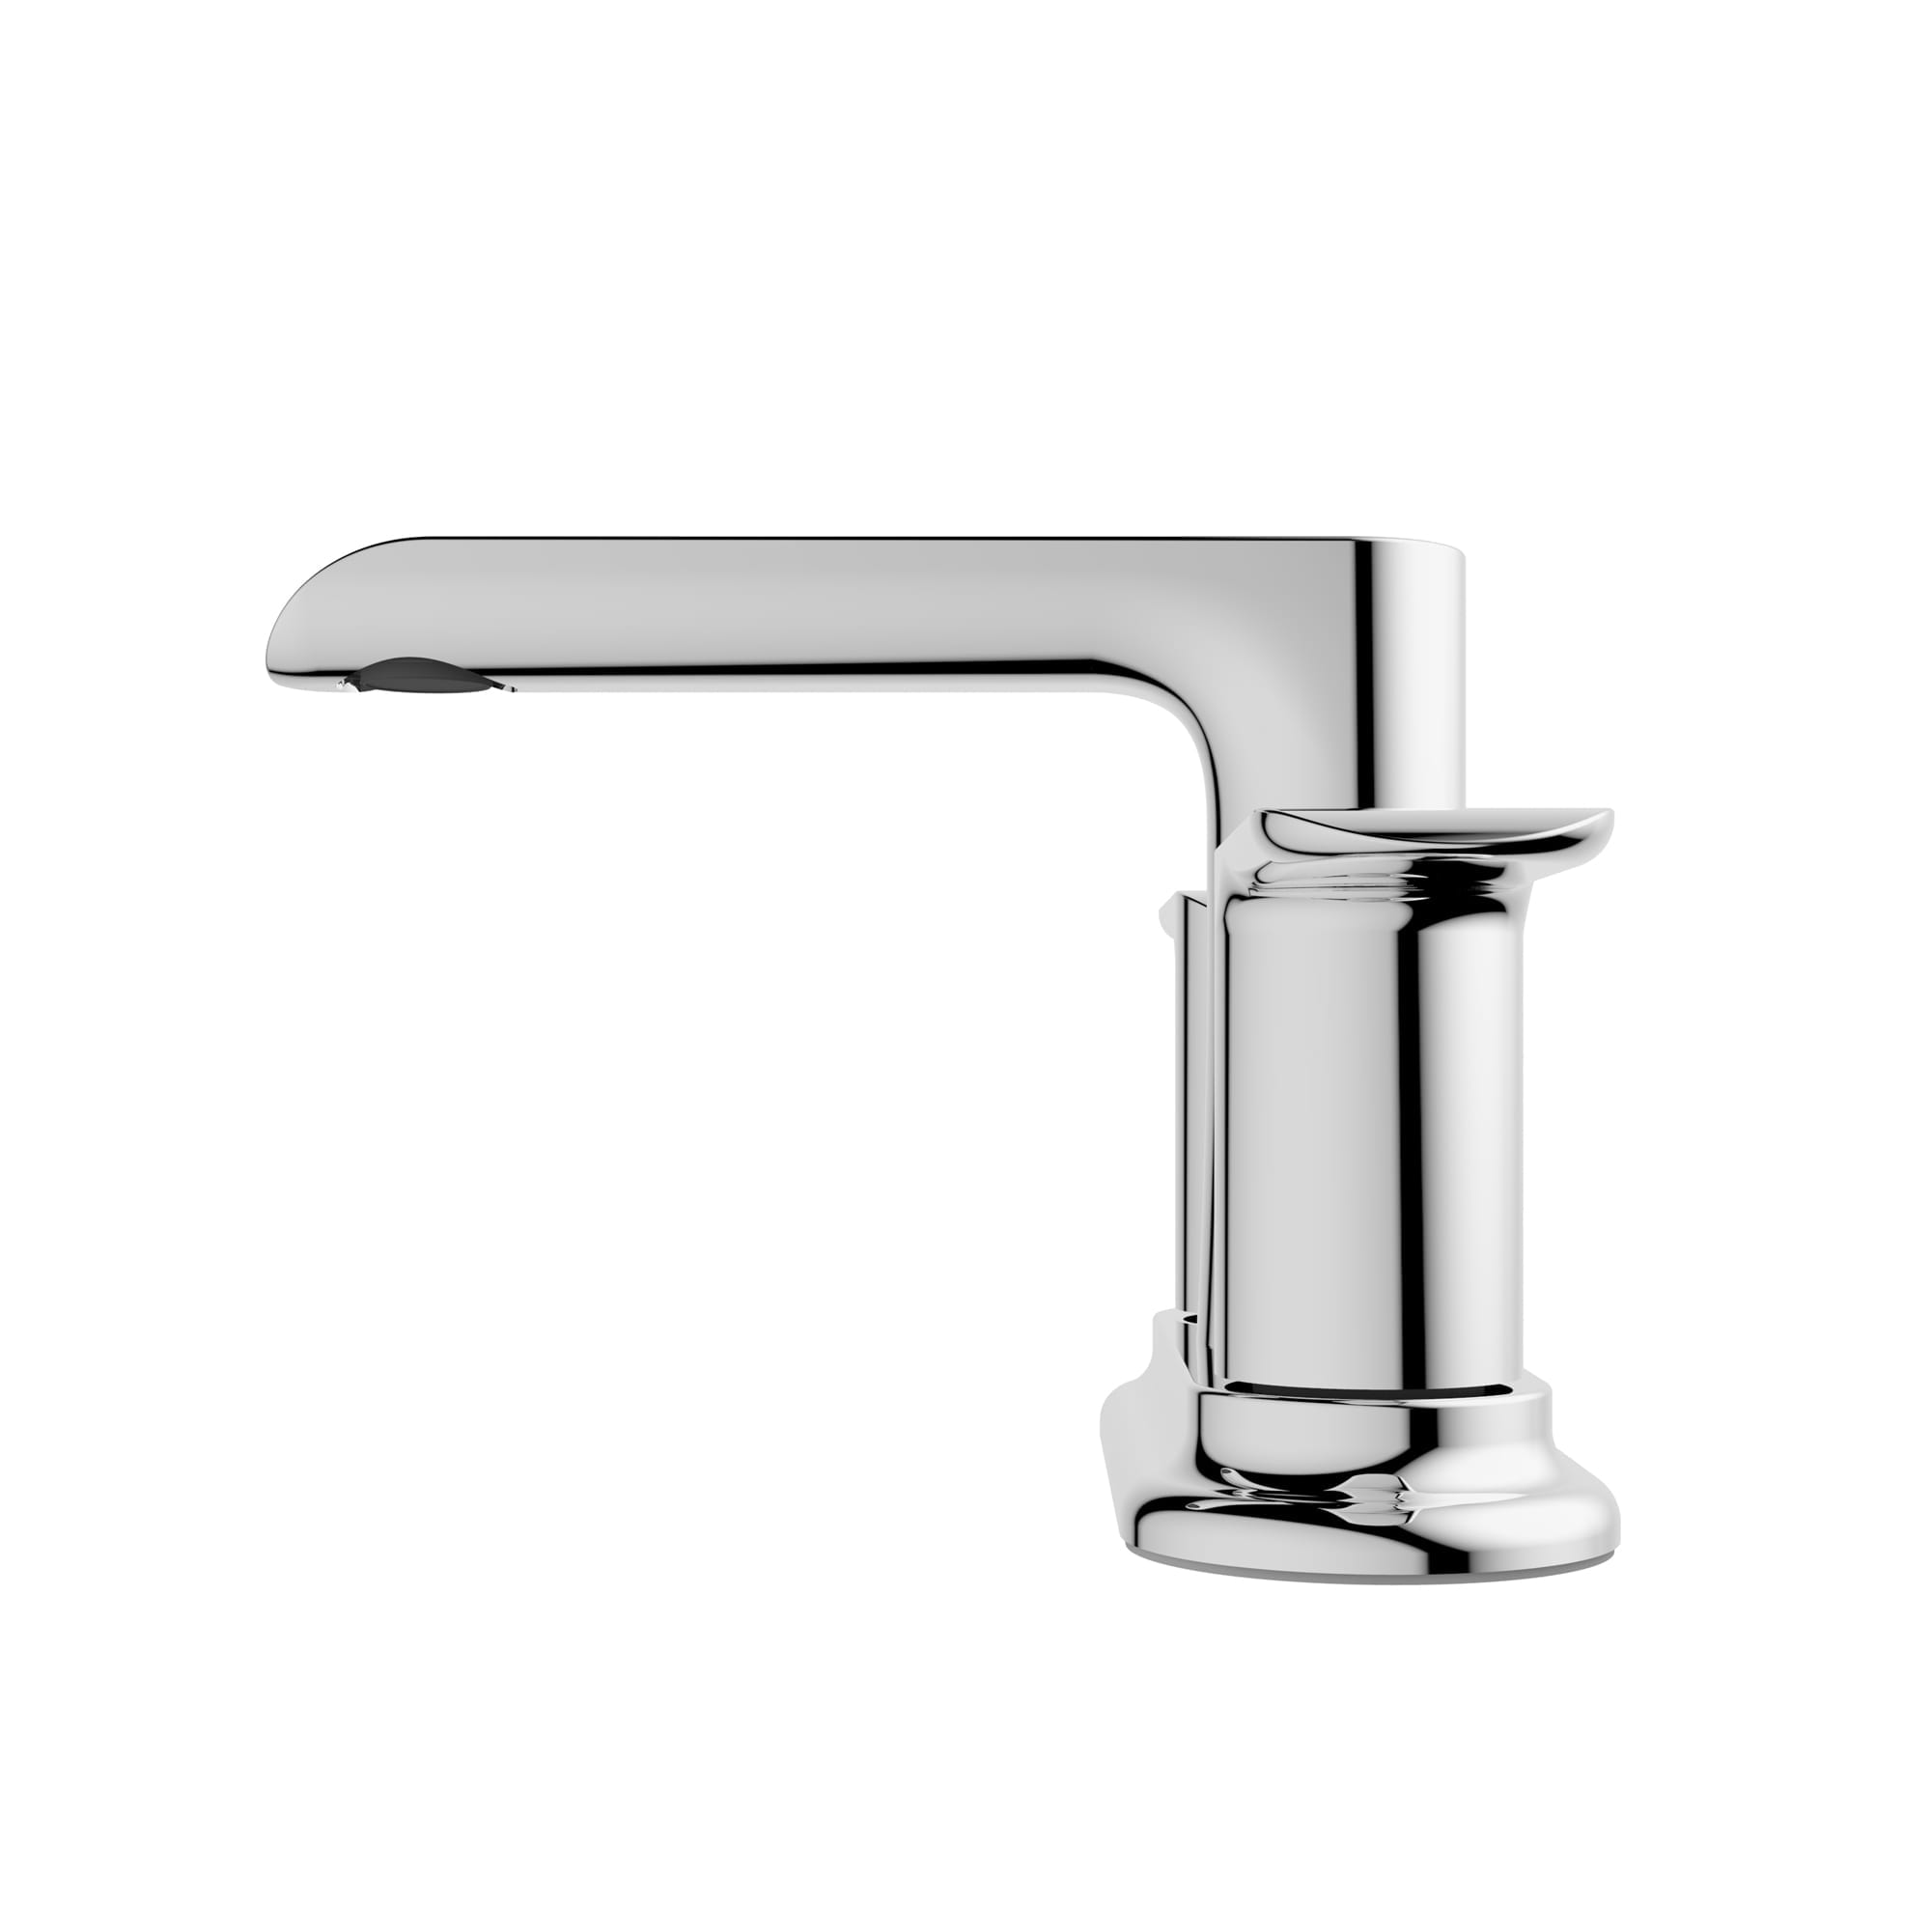 Lavatory Sink Faucet With Swivel Aerator Belanger Upt